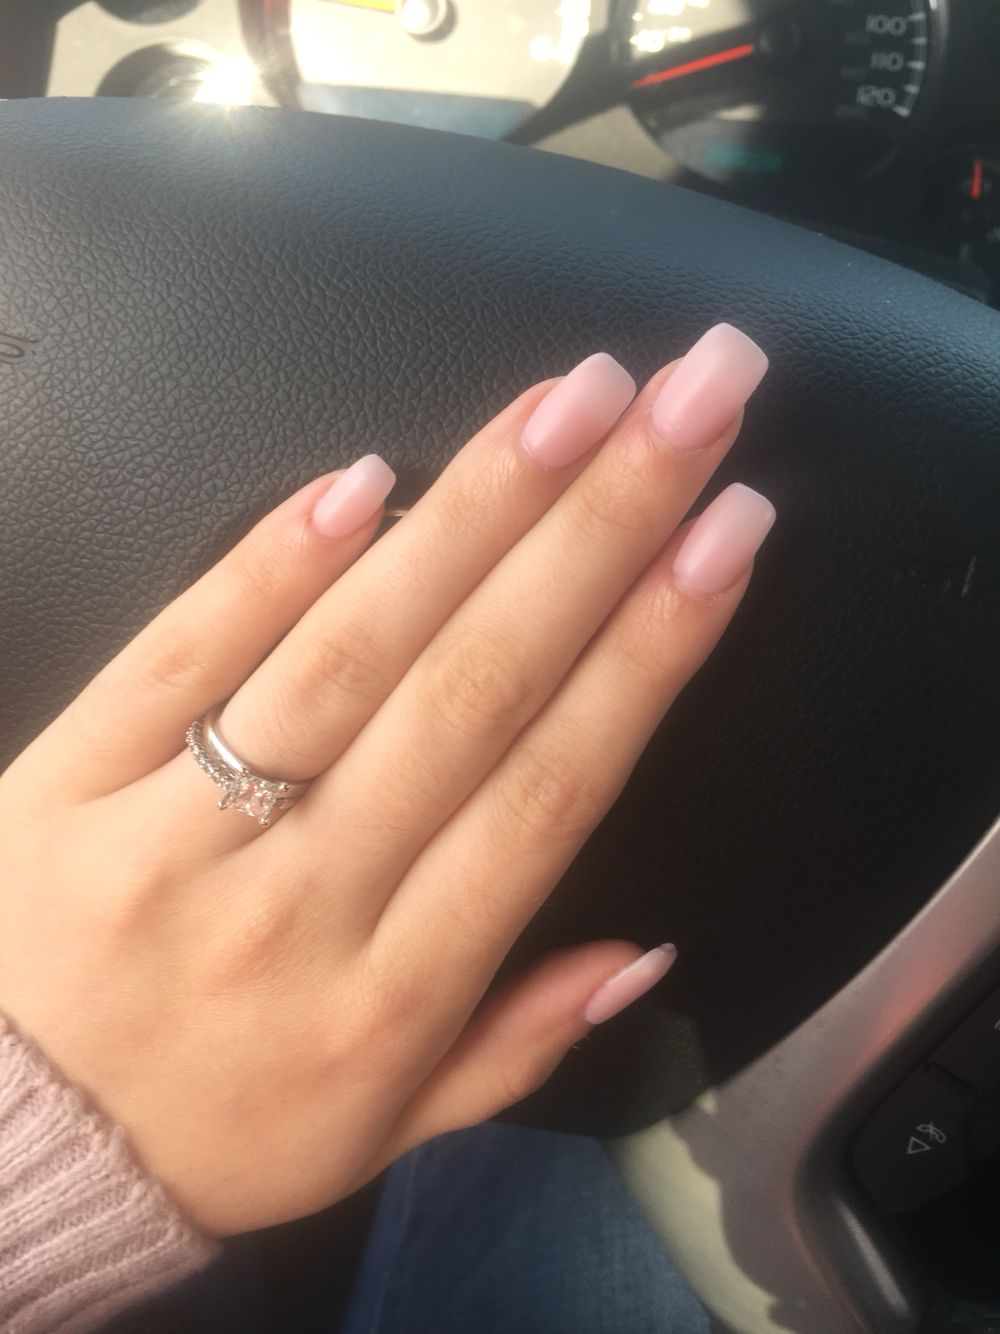 Acrylic Nails With Shellac Overlay With Images Pink Acrylic Nails Overlay Nails Natural Acrylic Nails